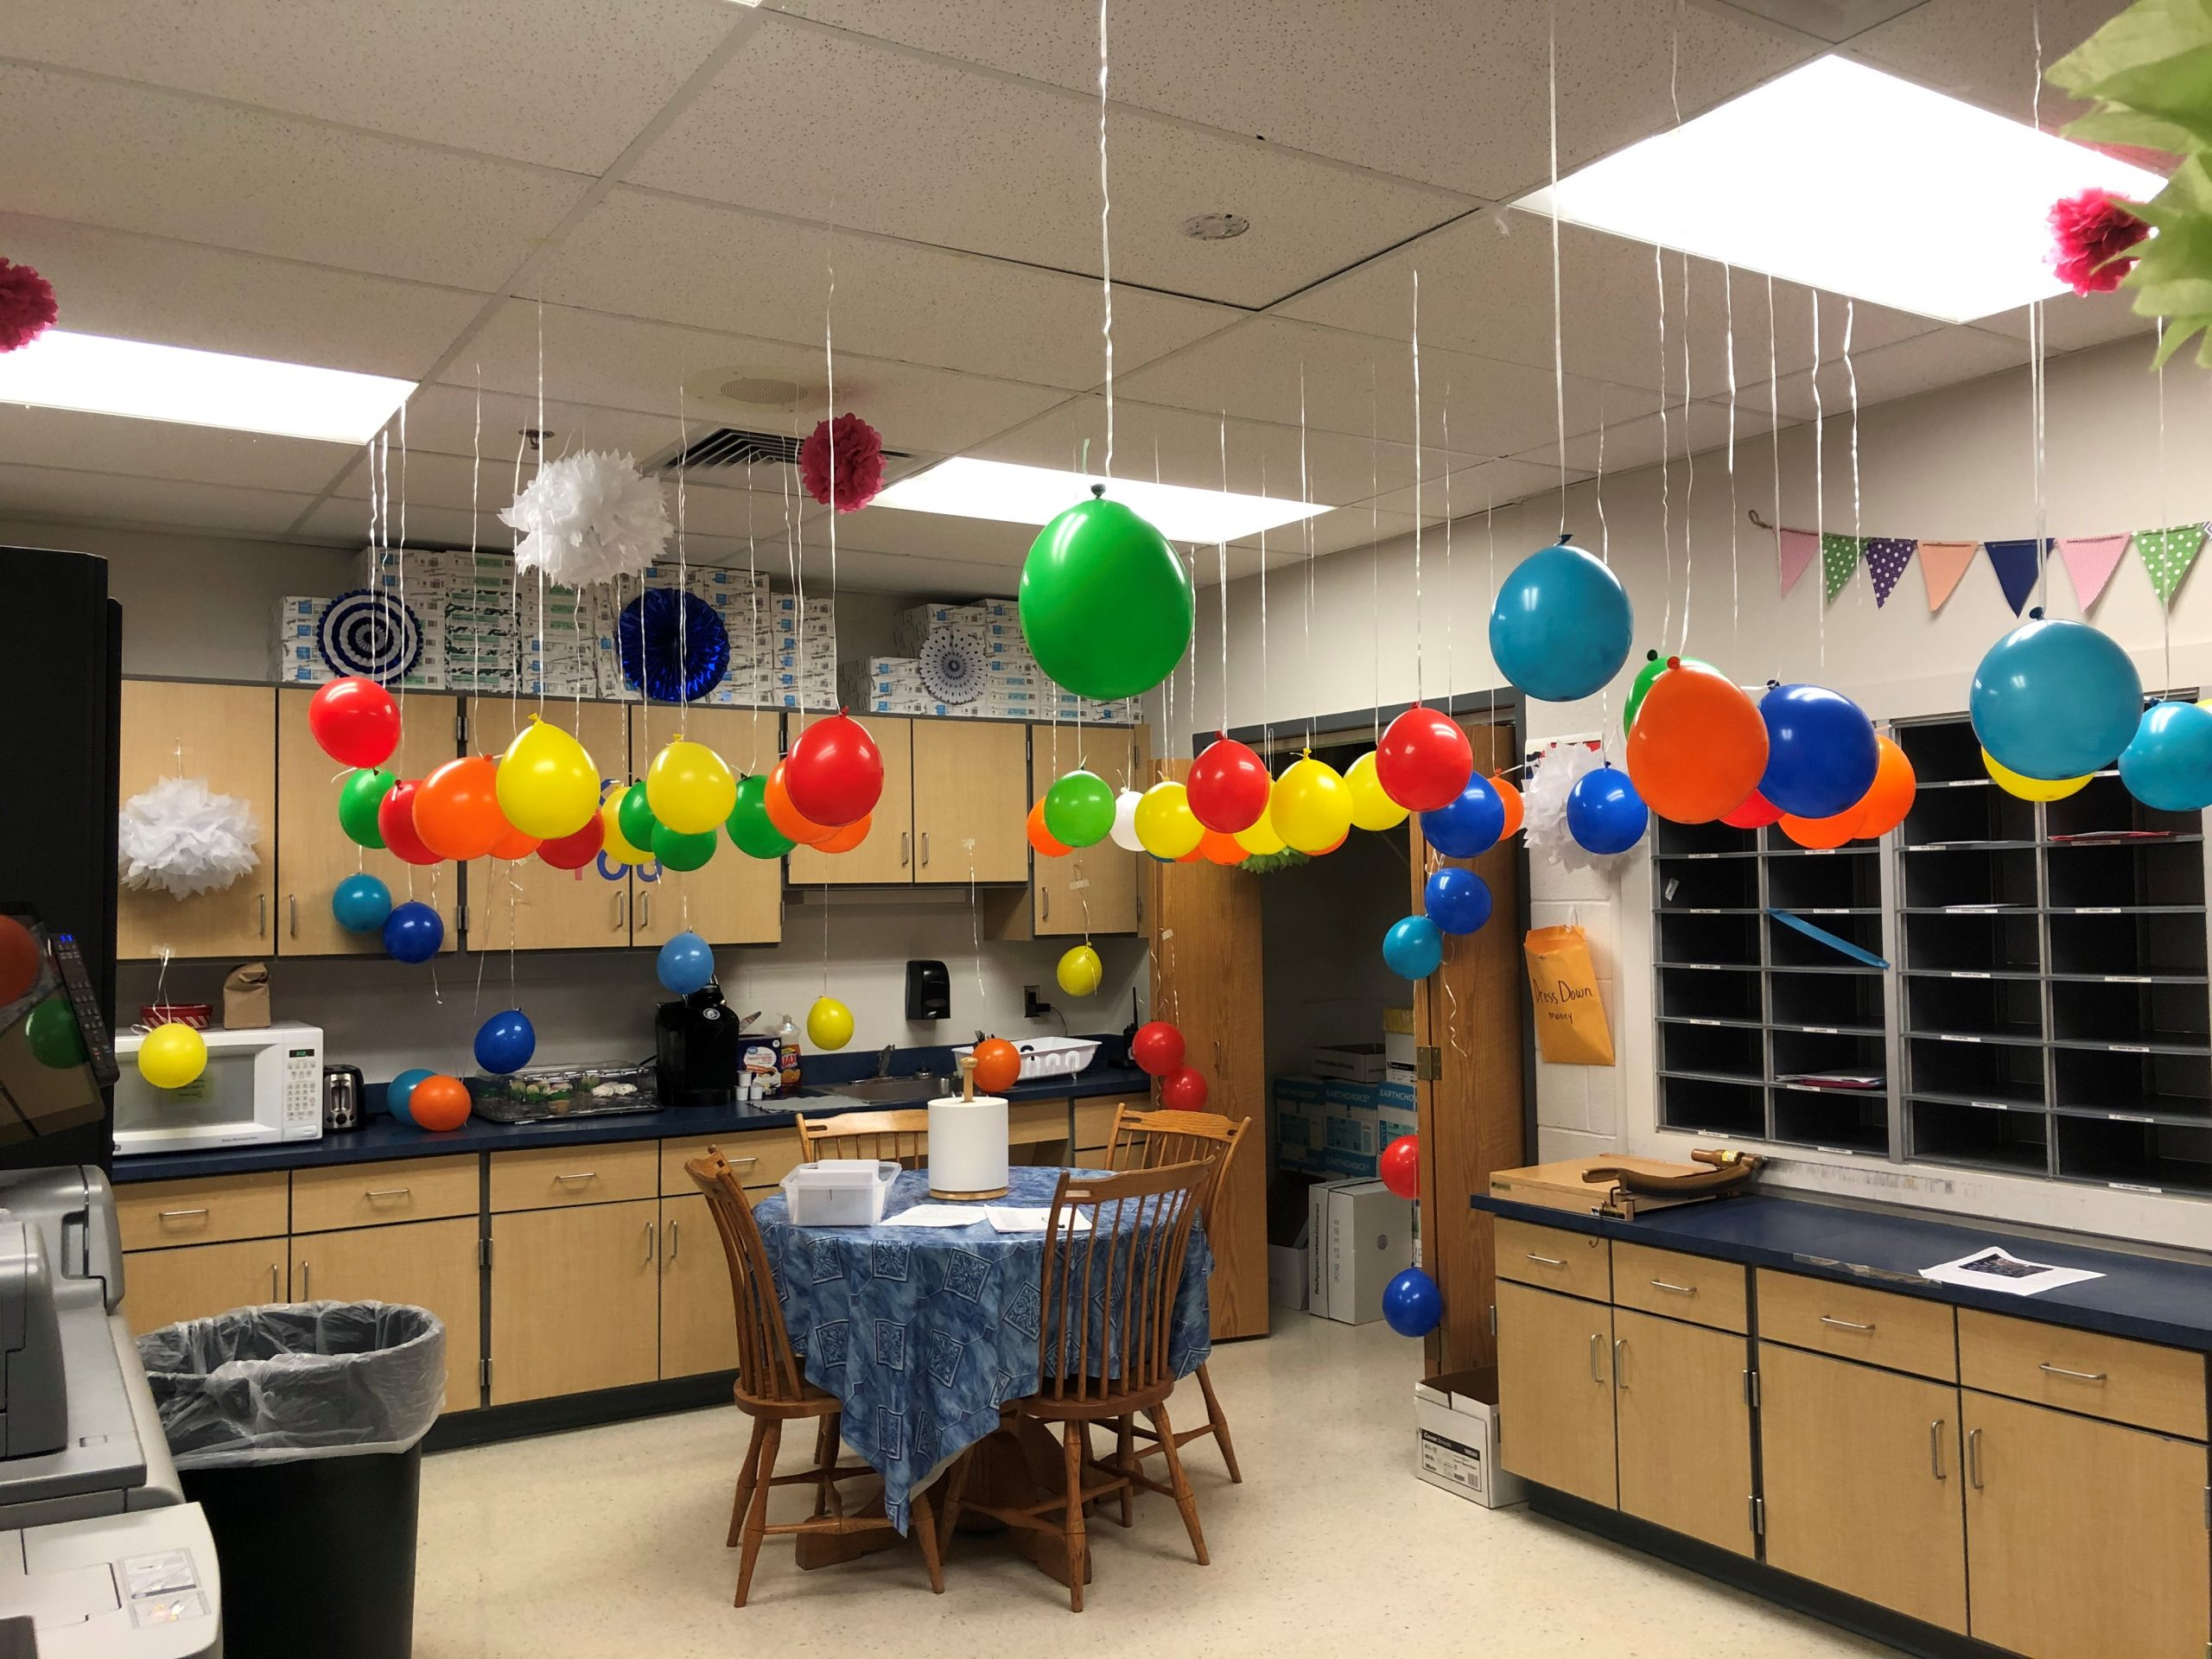 Thank you PTSO for our balloon popping activity to receive our gift cards